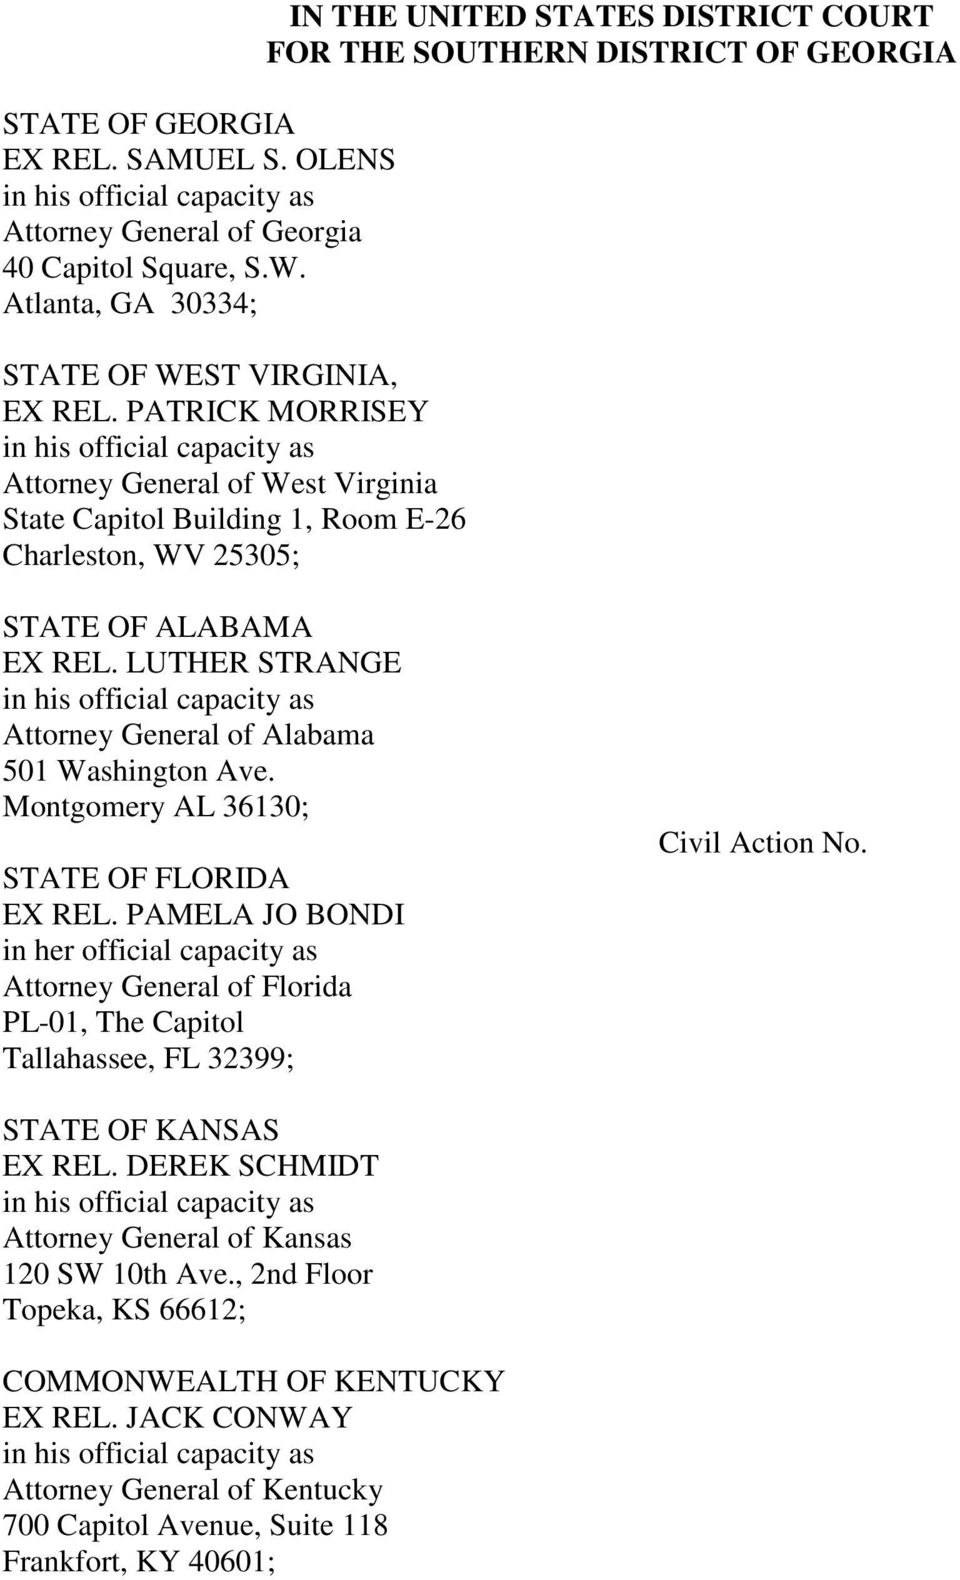 OF GEORGIA STATE OF ALABAMA EX REL. LUTHER STRANGE in his official capacity as Attorney General of Alabama 501 Washington Ave. Montgomery AL 36130; STATE OF FLORIDA EX REL.